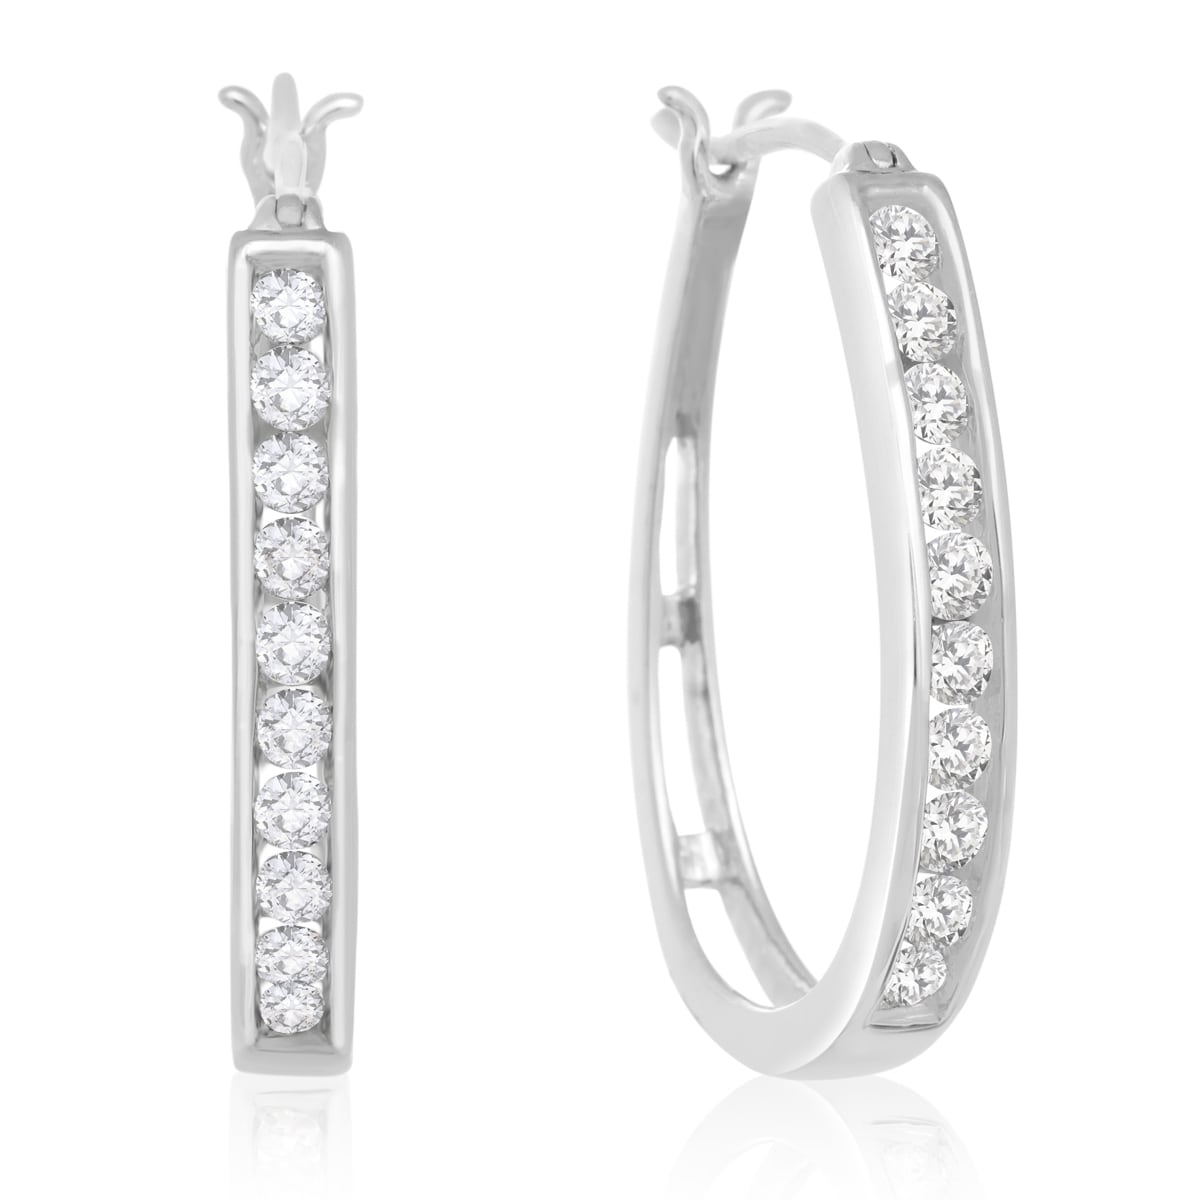 diadia diamonds high earrings diatoriplexerento heart each flores internally store queue quality item carats if market carat global rakuten diamond en